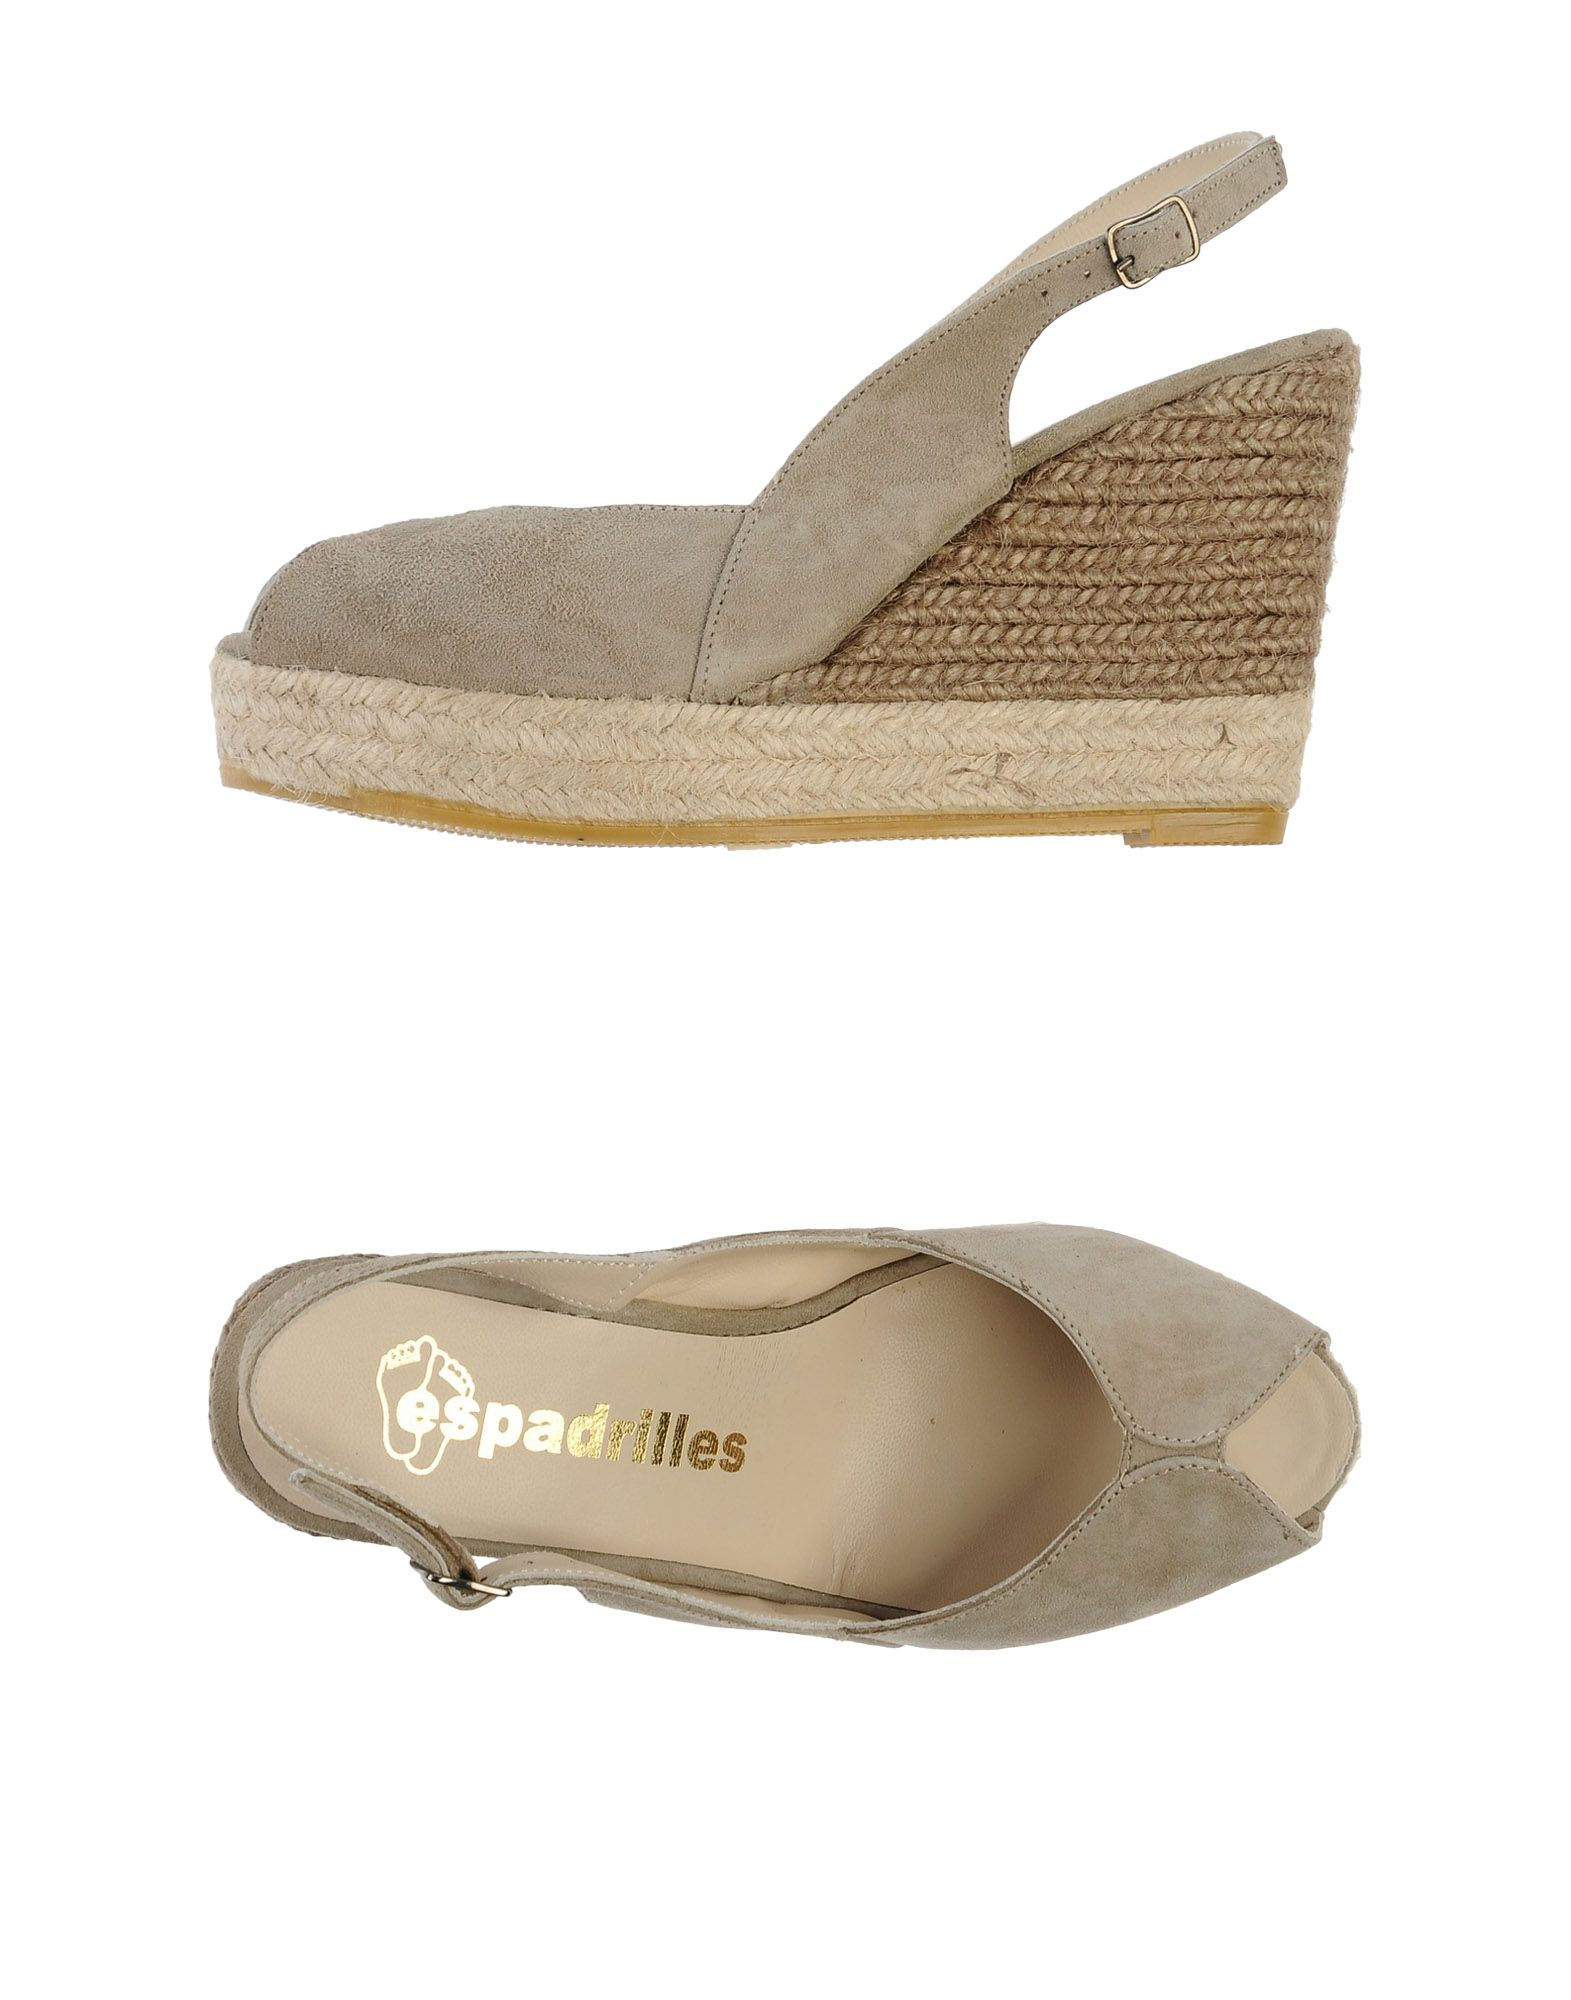 espadrilles heels wedges wedge sandals in gray light grey